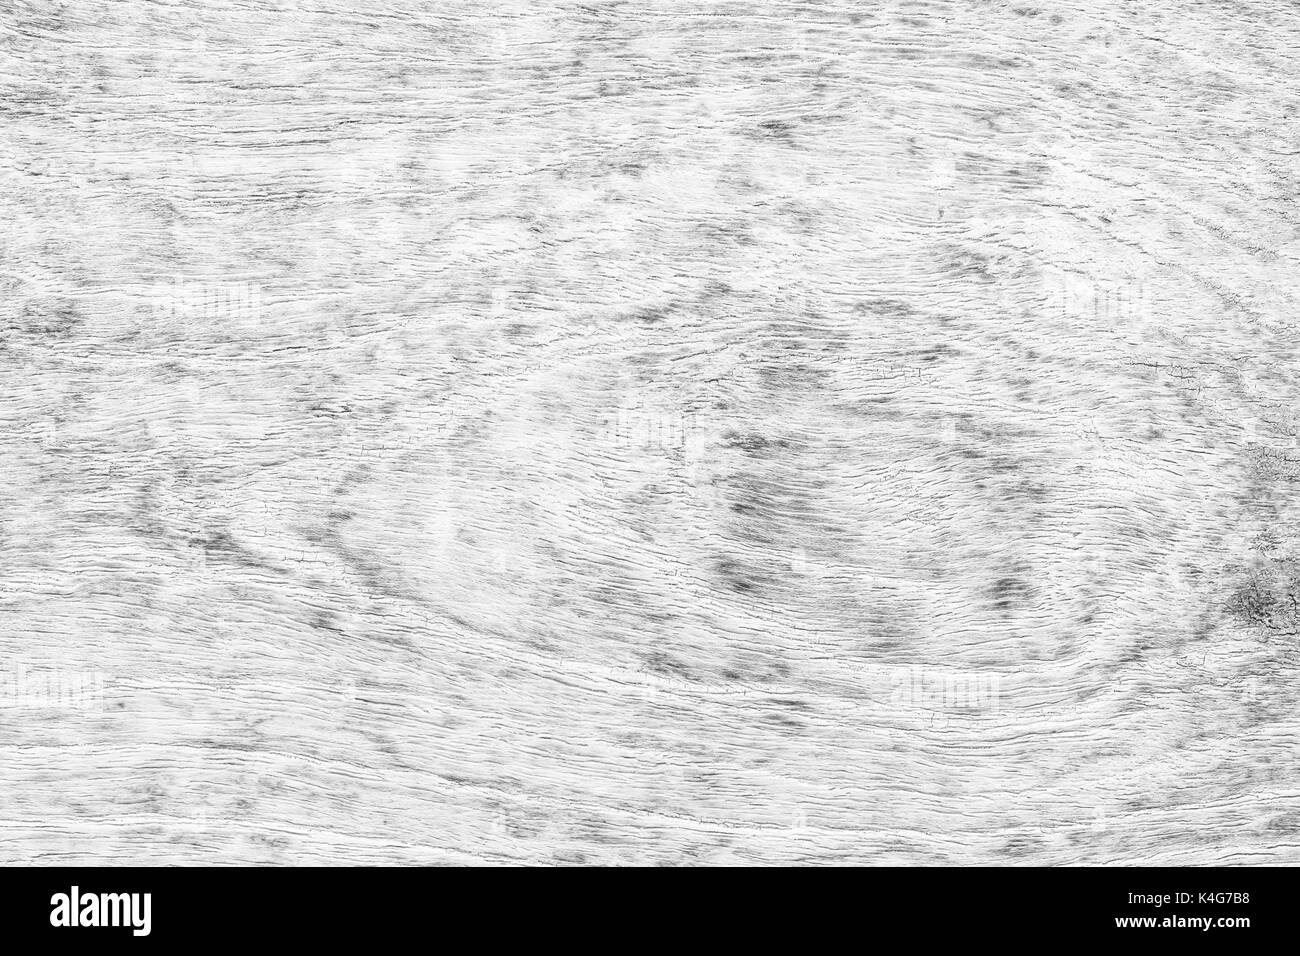 Vintage Surface White Wood Table And Rustic Grain Texture Background Close Up Of Dark Wall Made Old Planks